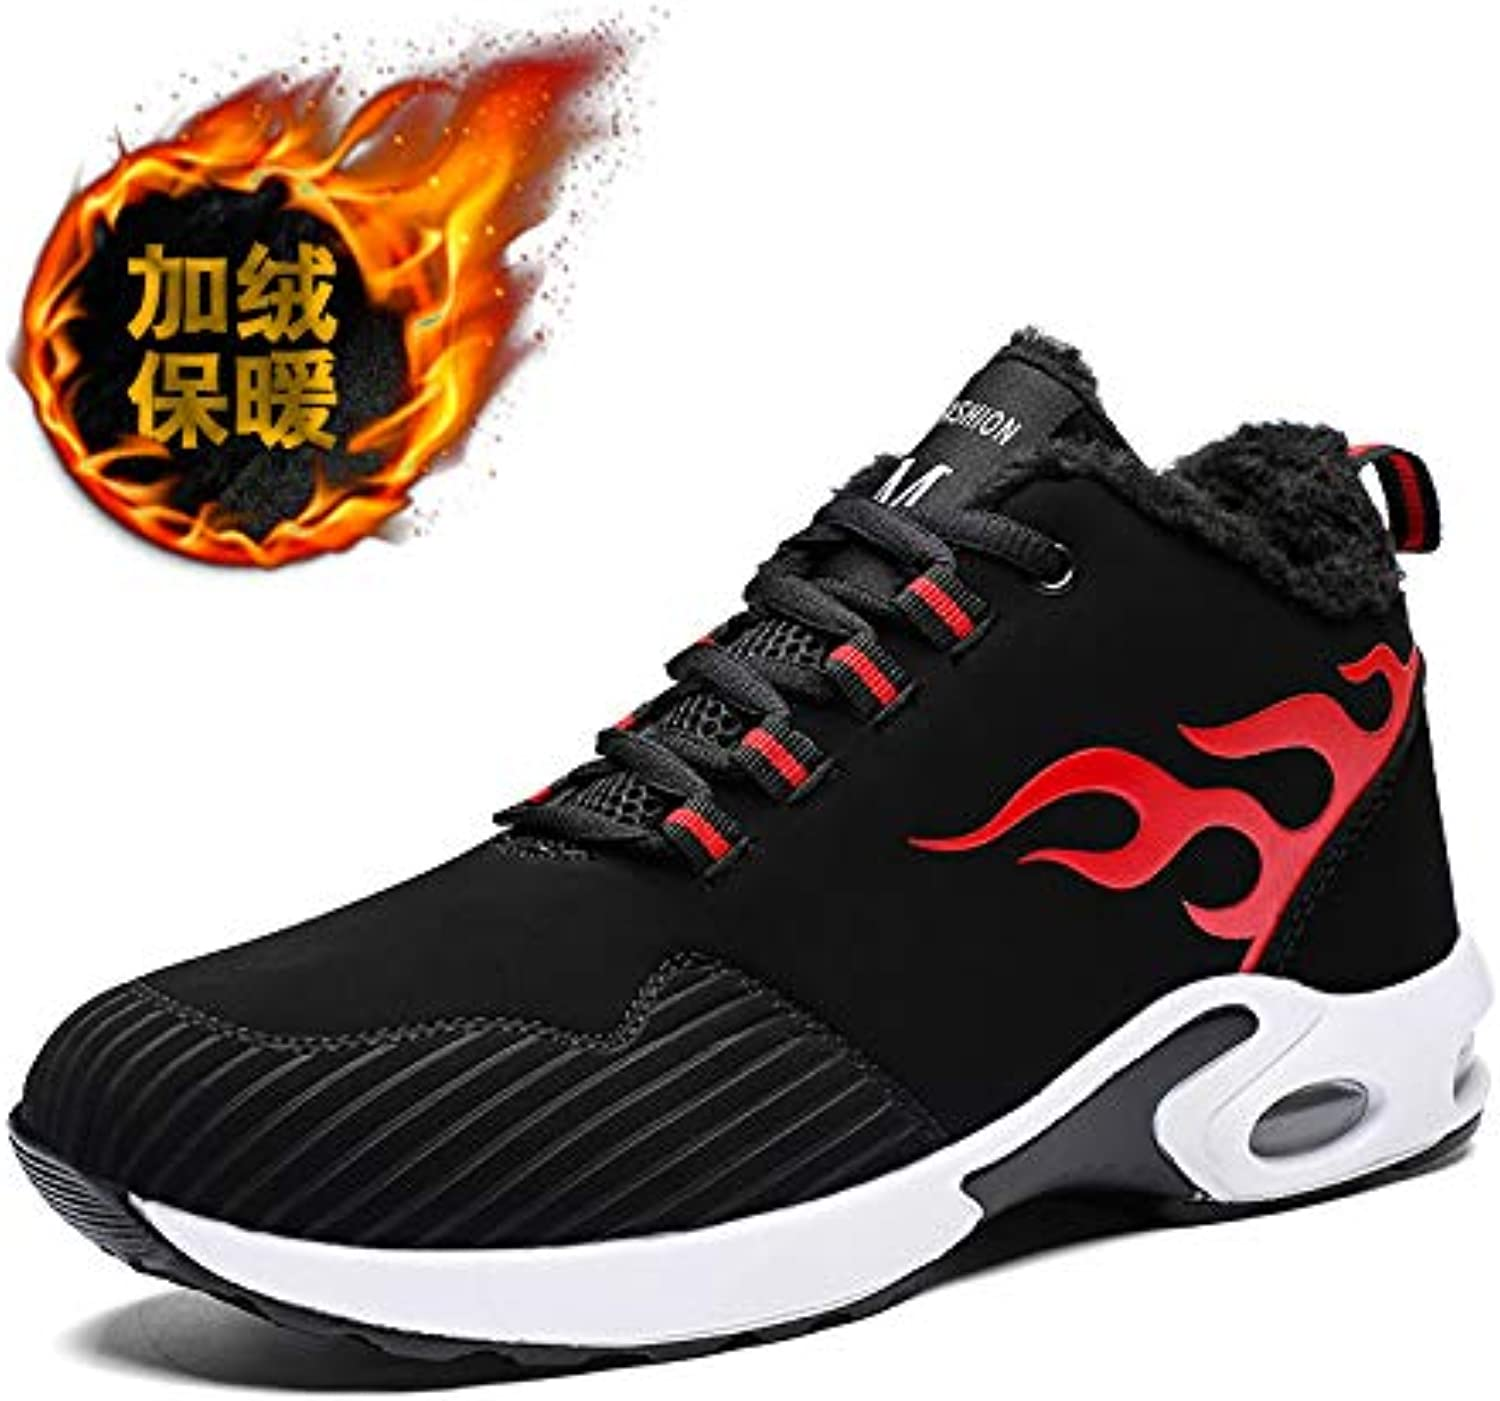 LOVDRAM Men'S shoes Autumn And Winter Men And Women Couple shoes Running shoes Student Fashion Men'S Casual Sports Thick Warm Cotton shoes